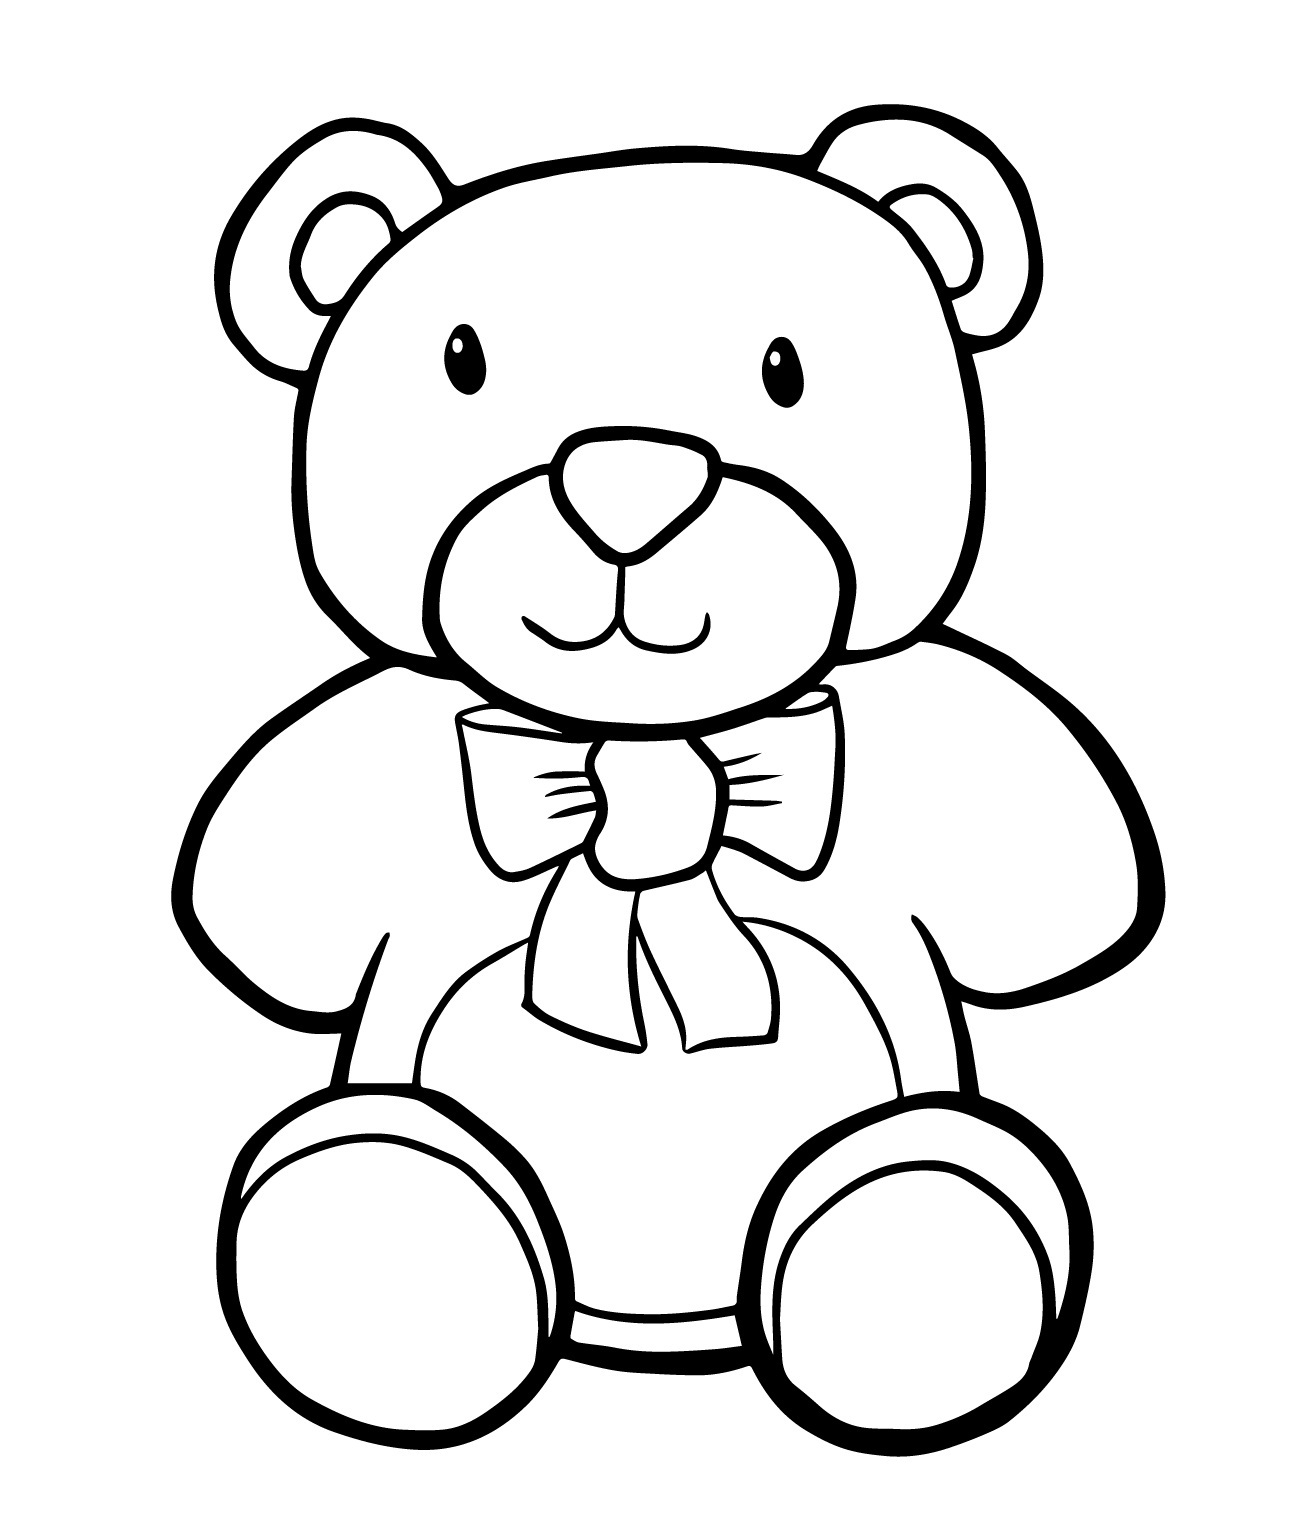 coloring picture of a bear free bear coloring pages coloring of a bear picture